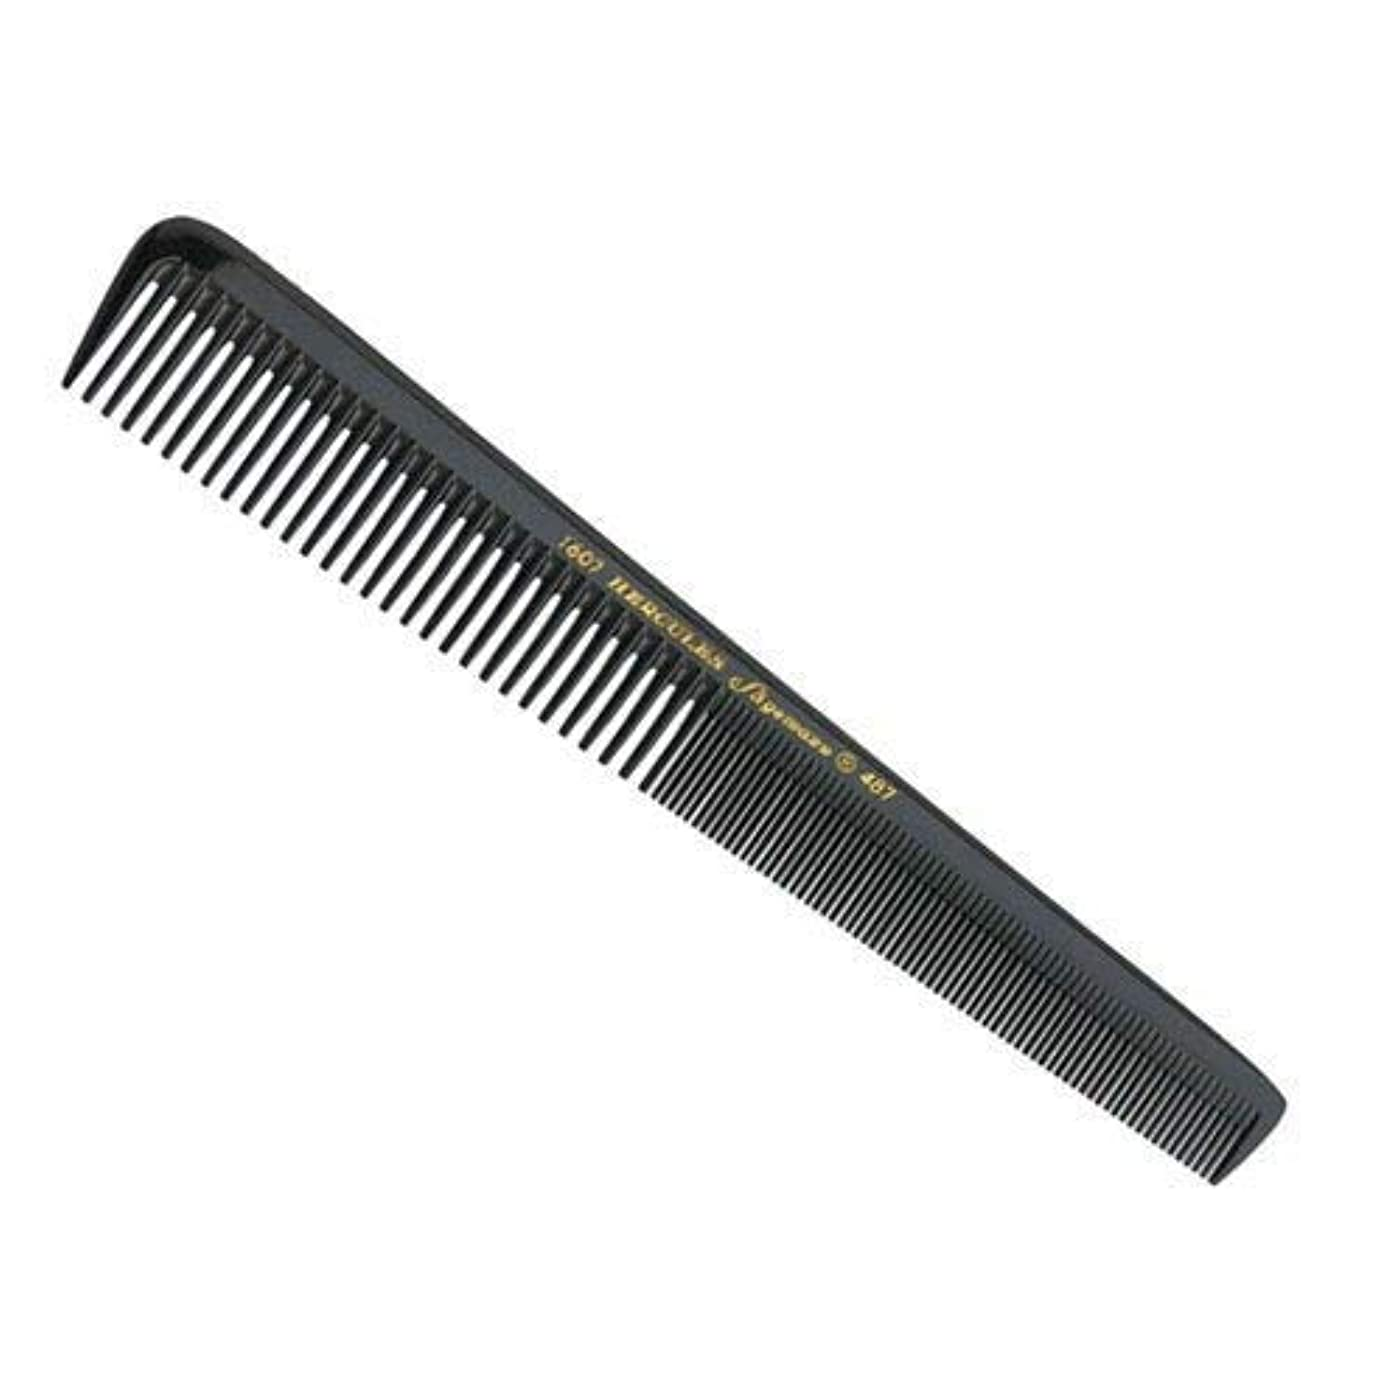 接触ぺディカブストラトフォードオンエイボンHercules S?gemann Tapered Barber Comb for 3 mm cut with wide and extra fine teeth 7 1/2